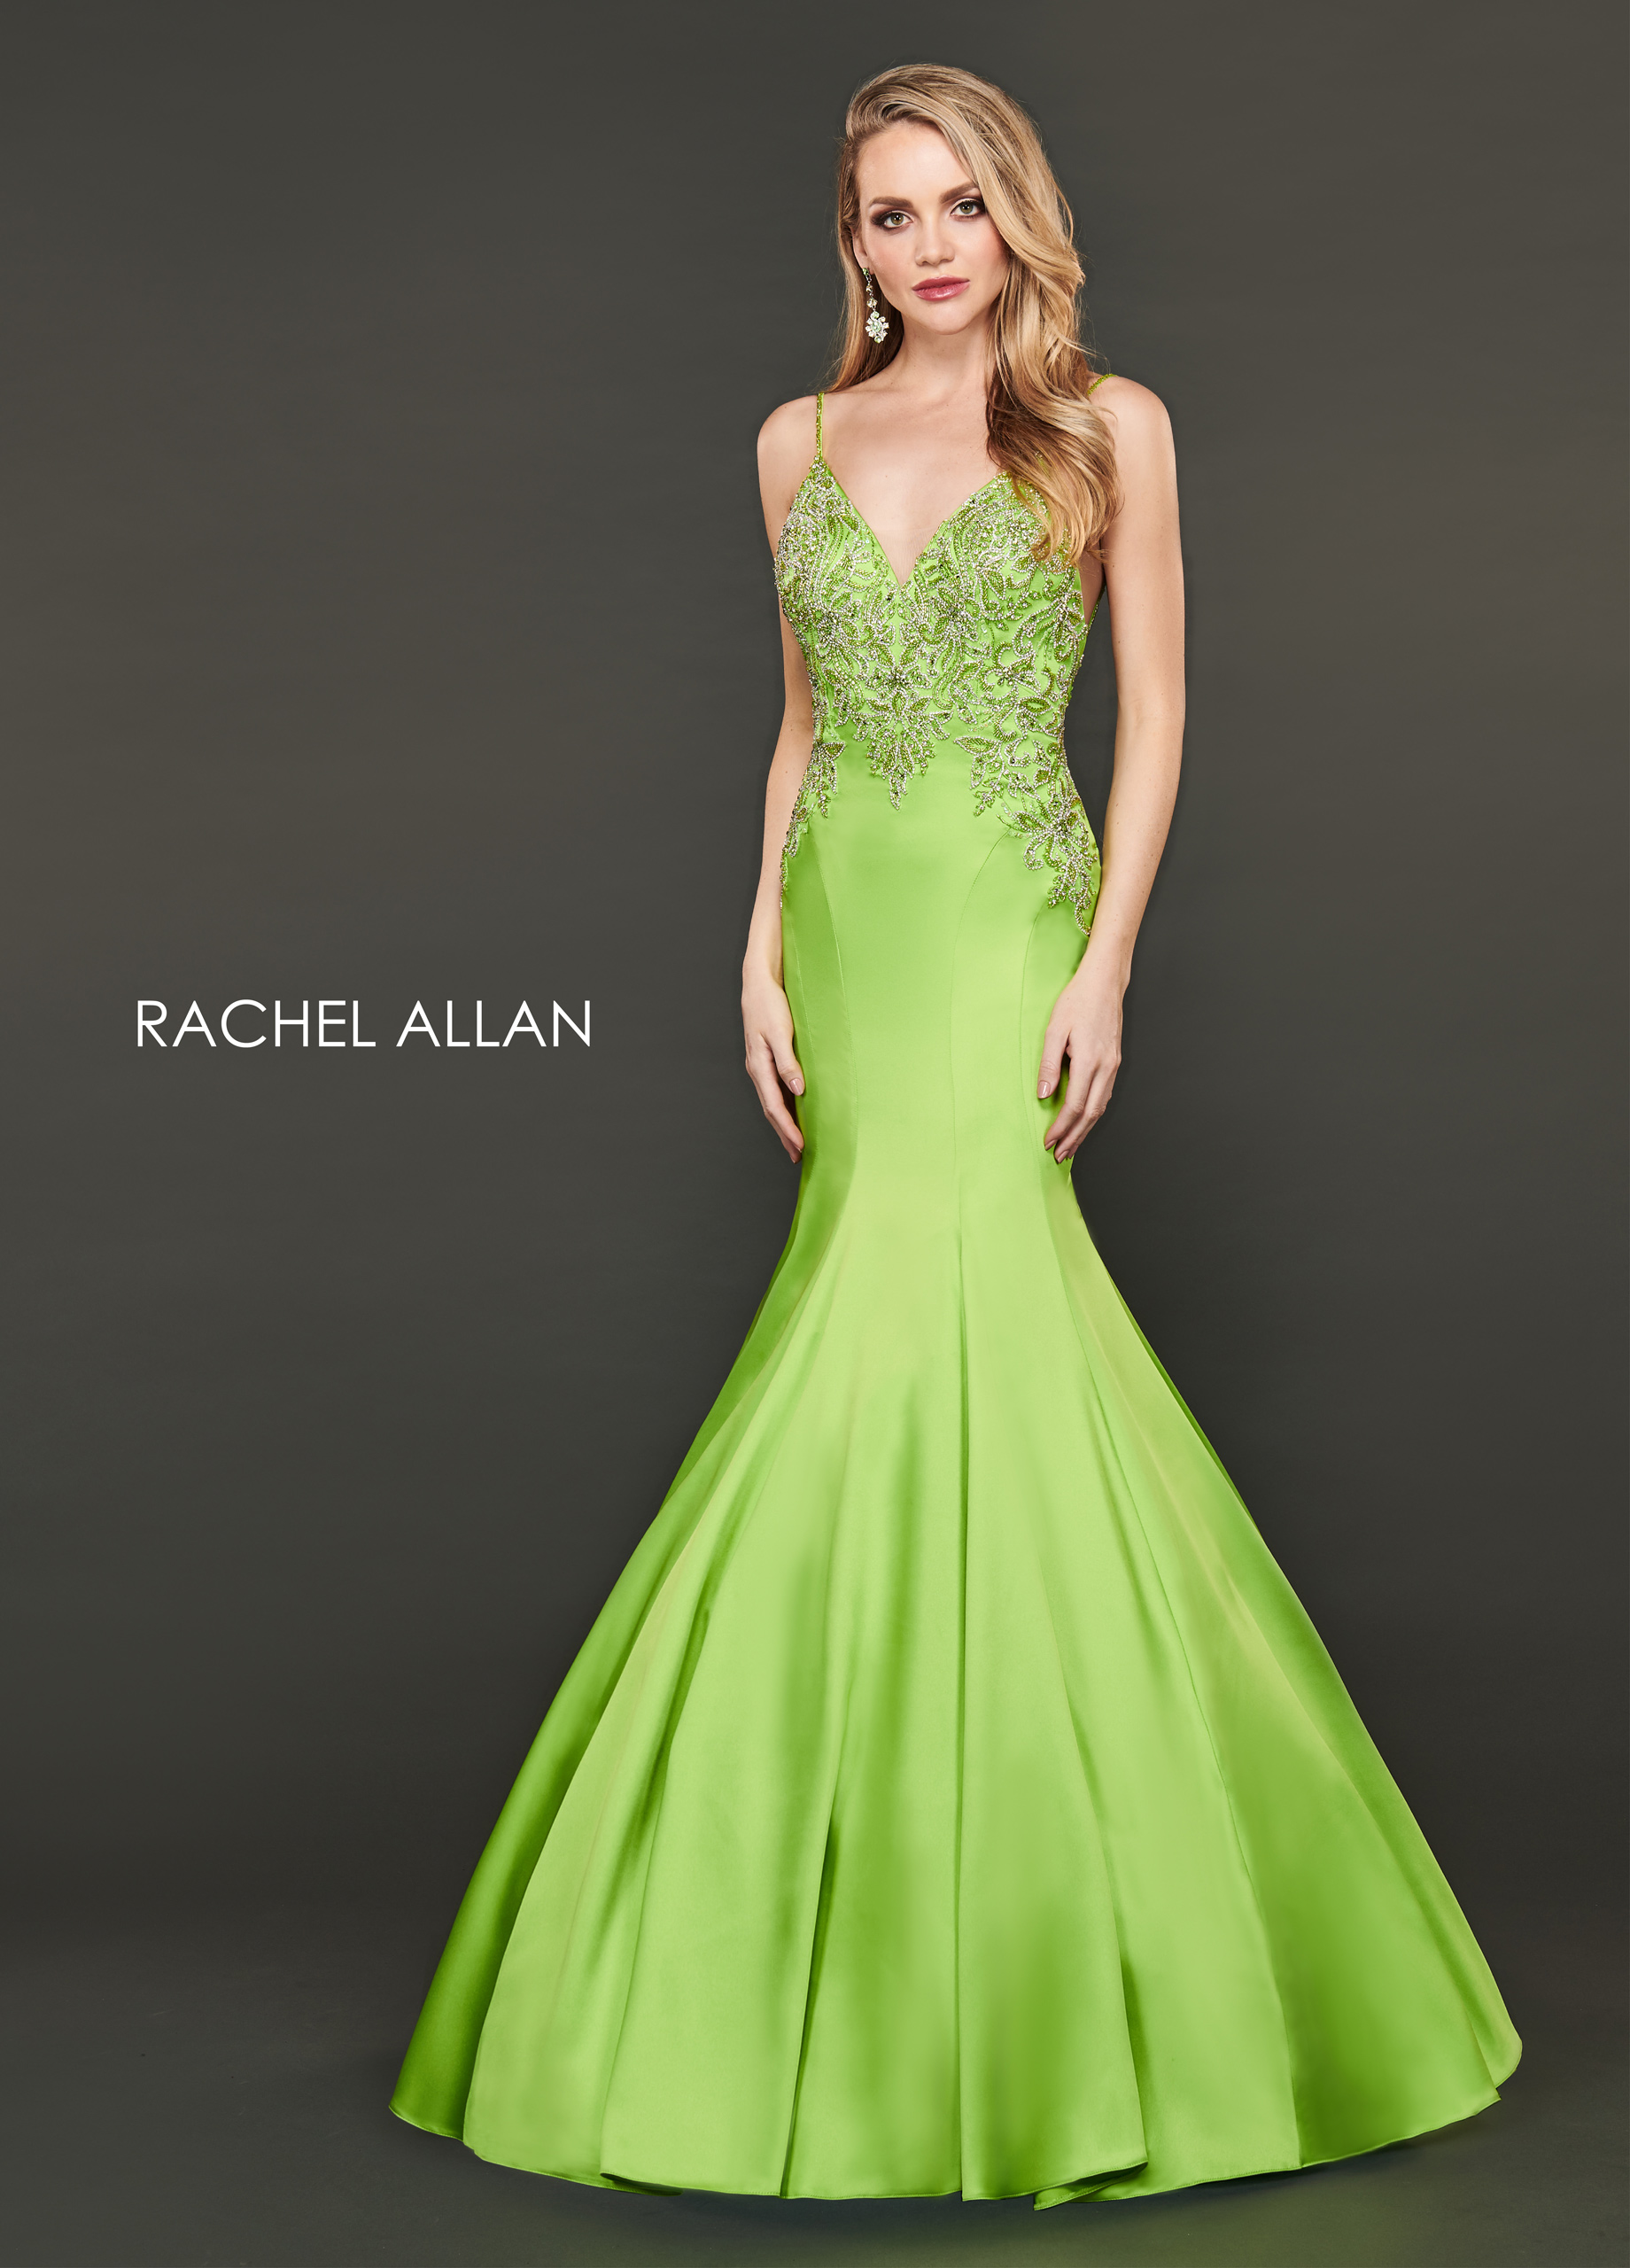 V-Neck Mermaid Couture Dresses in Green Color